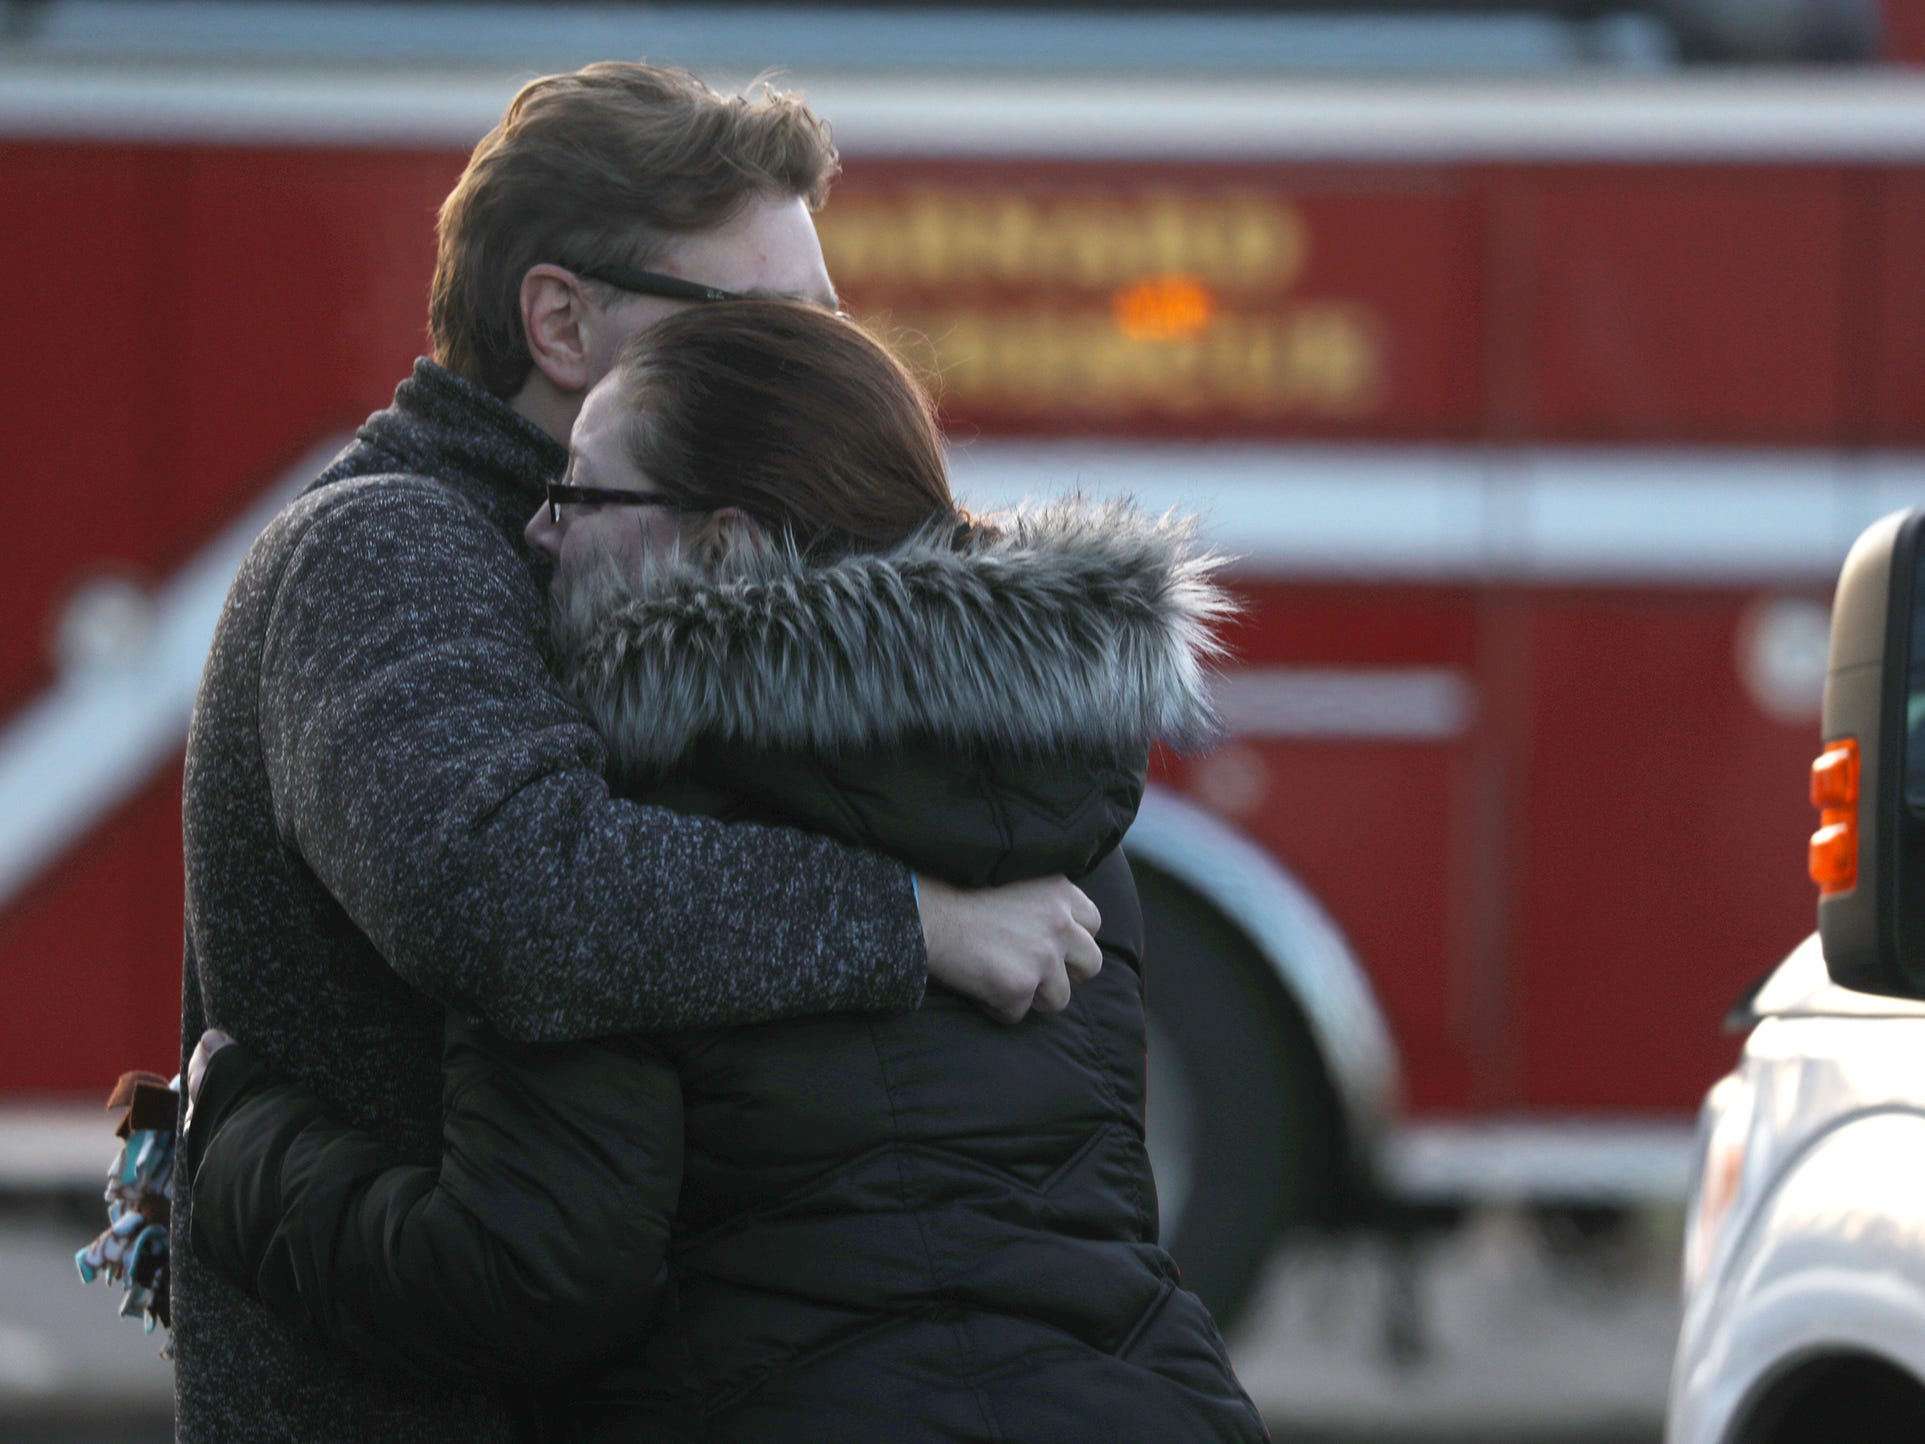 A woman is comforted at the scene of the fire where a woman was found dead in a townhouse on Pond View Heights.